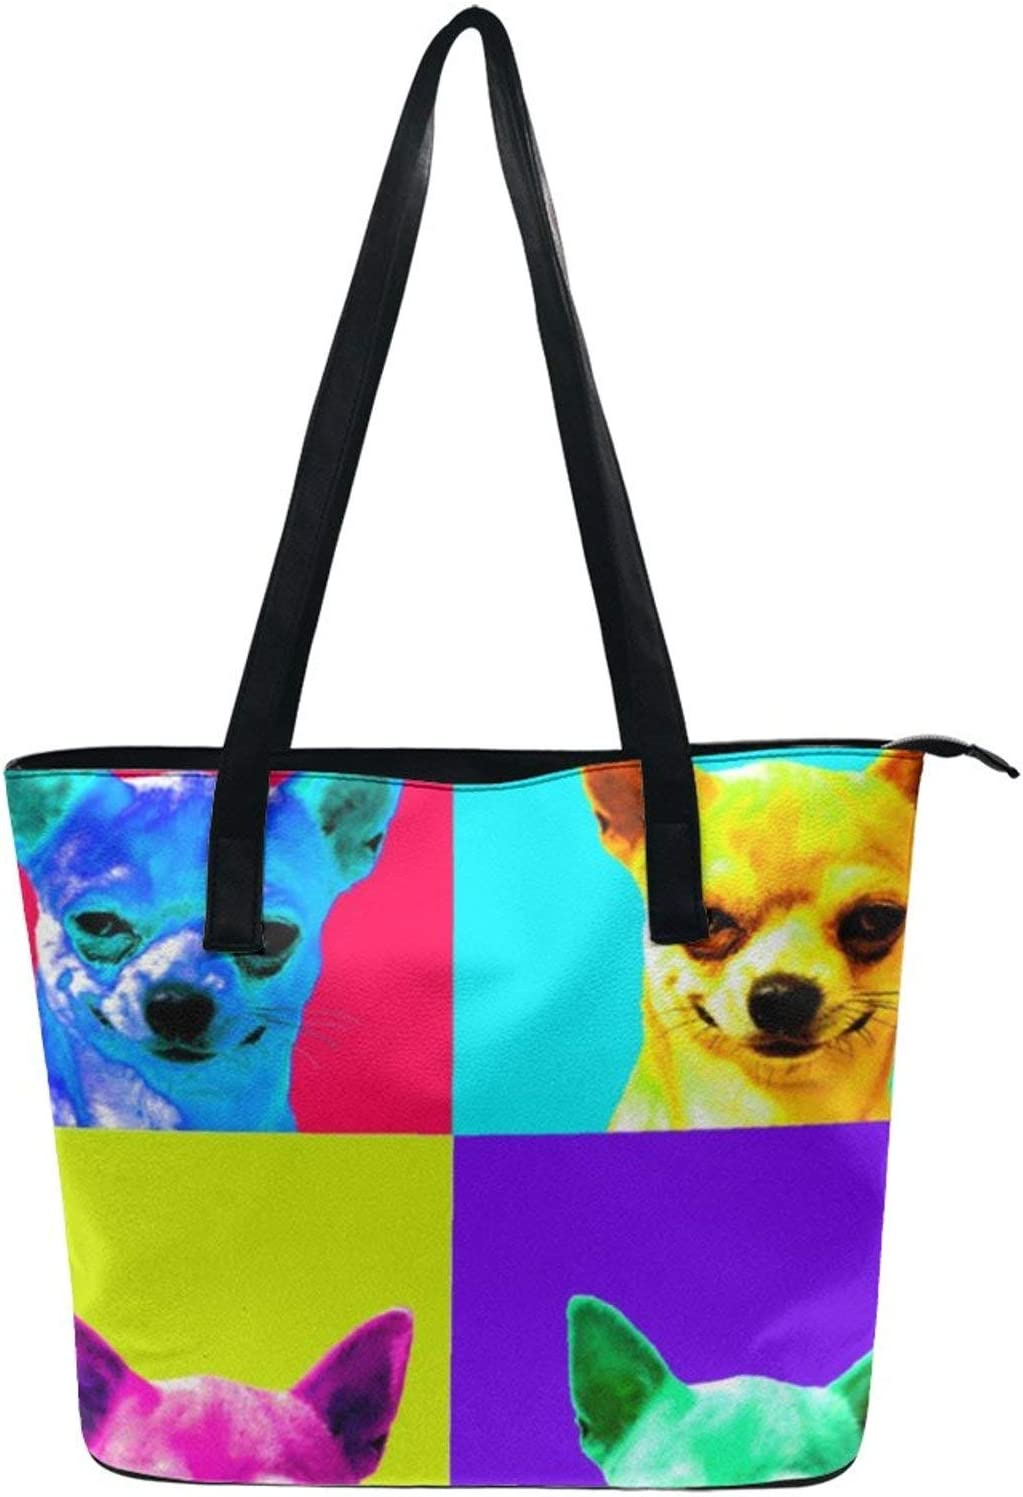 NiYoung Stylish Tote Bag for Women PU Leather Tote Handbags Lightweight Large Capacity Shoulder Bags Travel Business Shopping School Casual Bag with Zipper, Animal Dog Chihuahua Pop Art